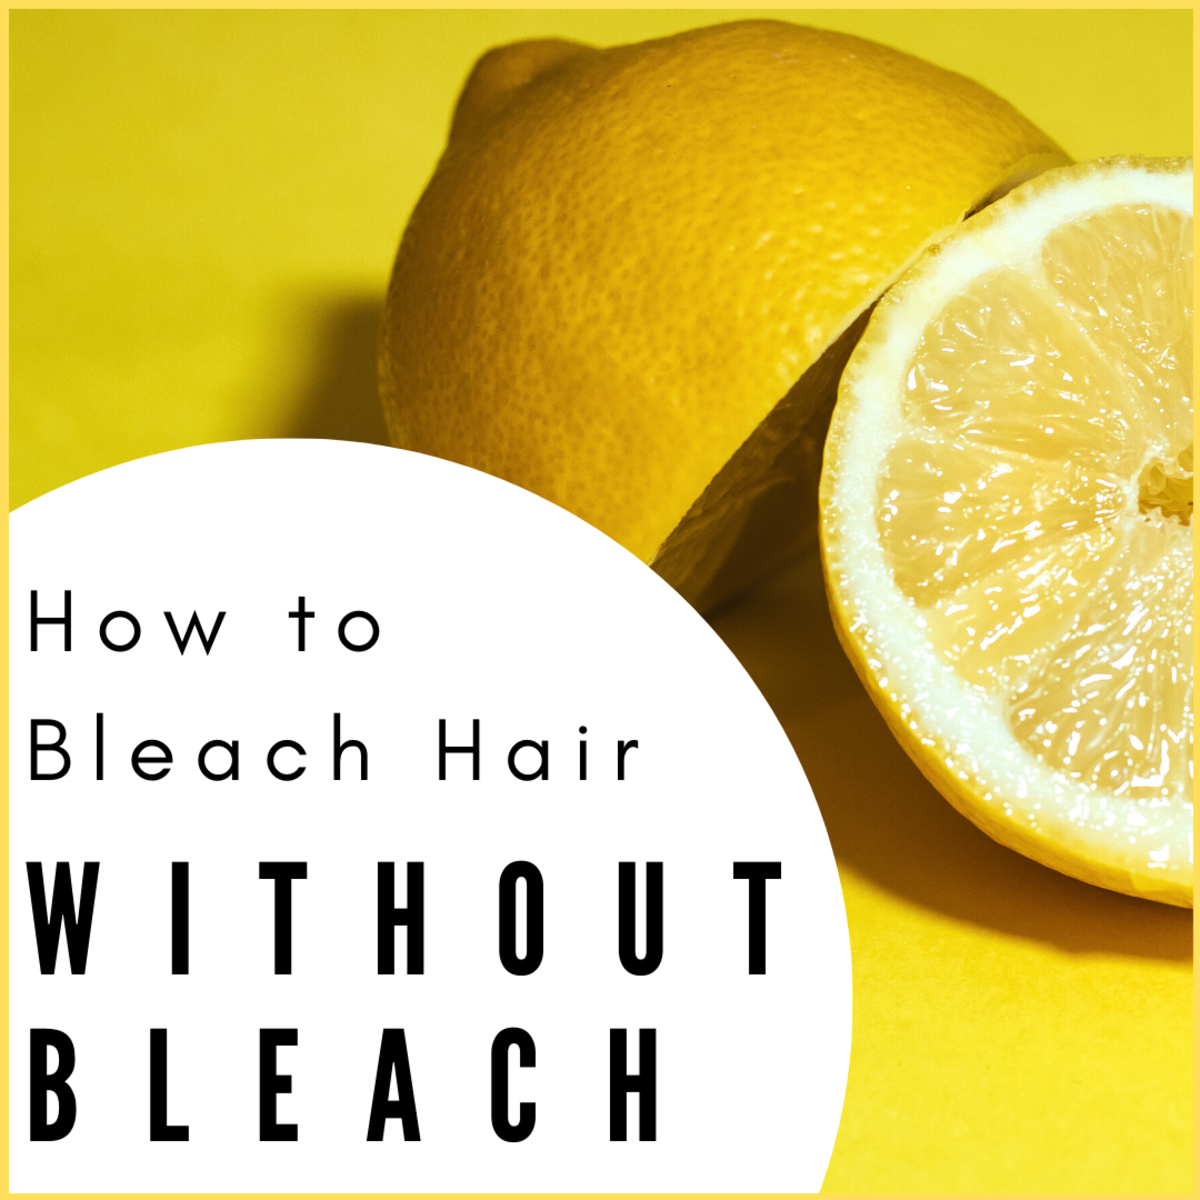 Hoping to lighten your hair without using bleach? Read on to discover a few natural options.